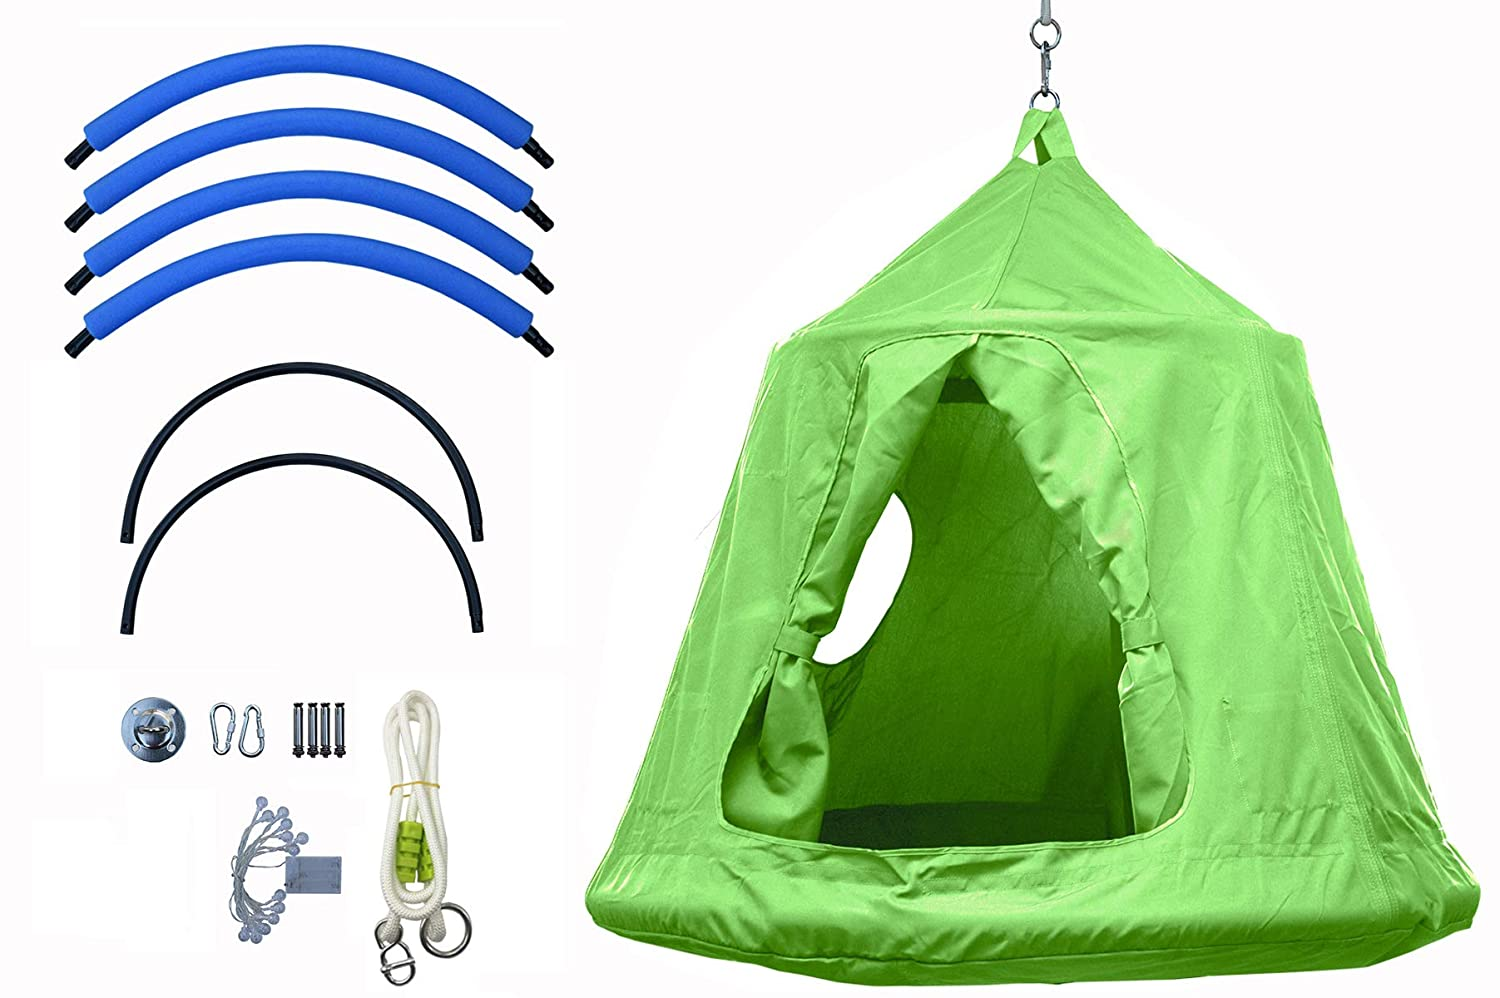 Outdoor Waterproof Backyard Play Center Hanging Tree House Camping Hammock Tent Indoor bedroom Swing Chair with Lamp string for Accommodating 2 Children – Green